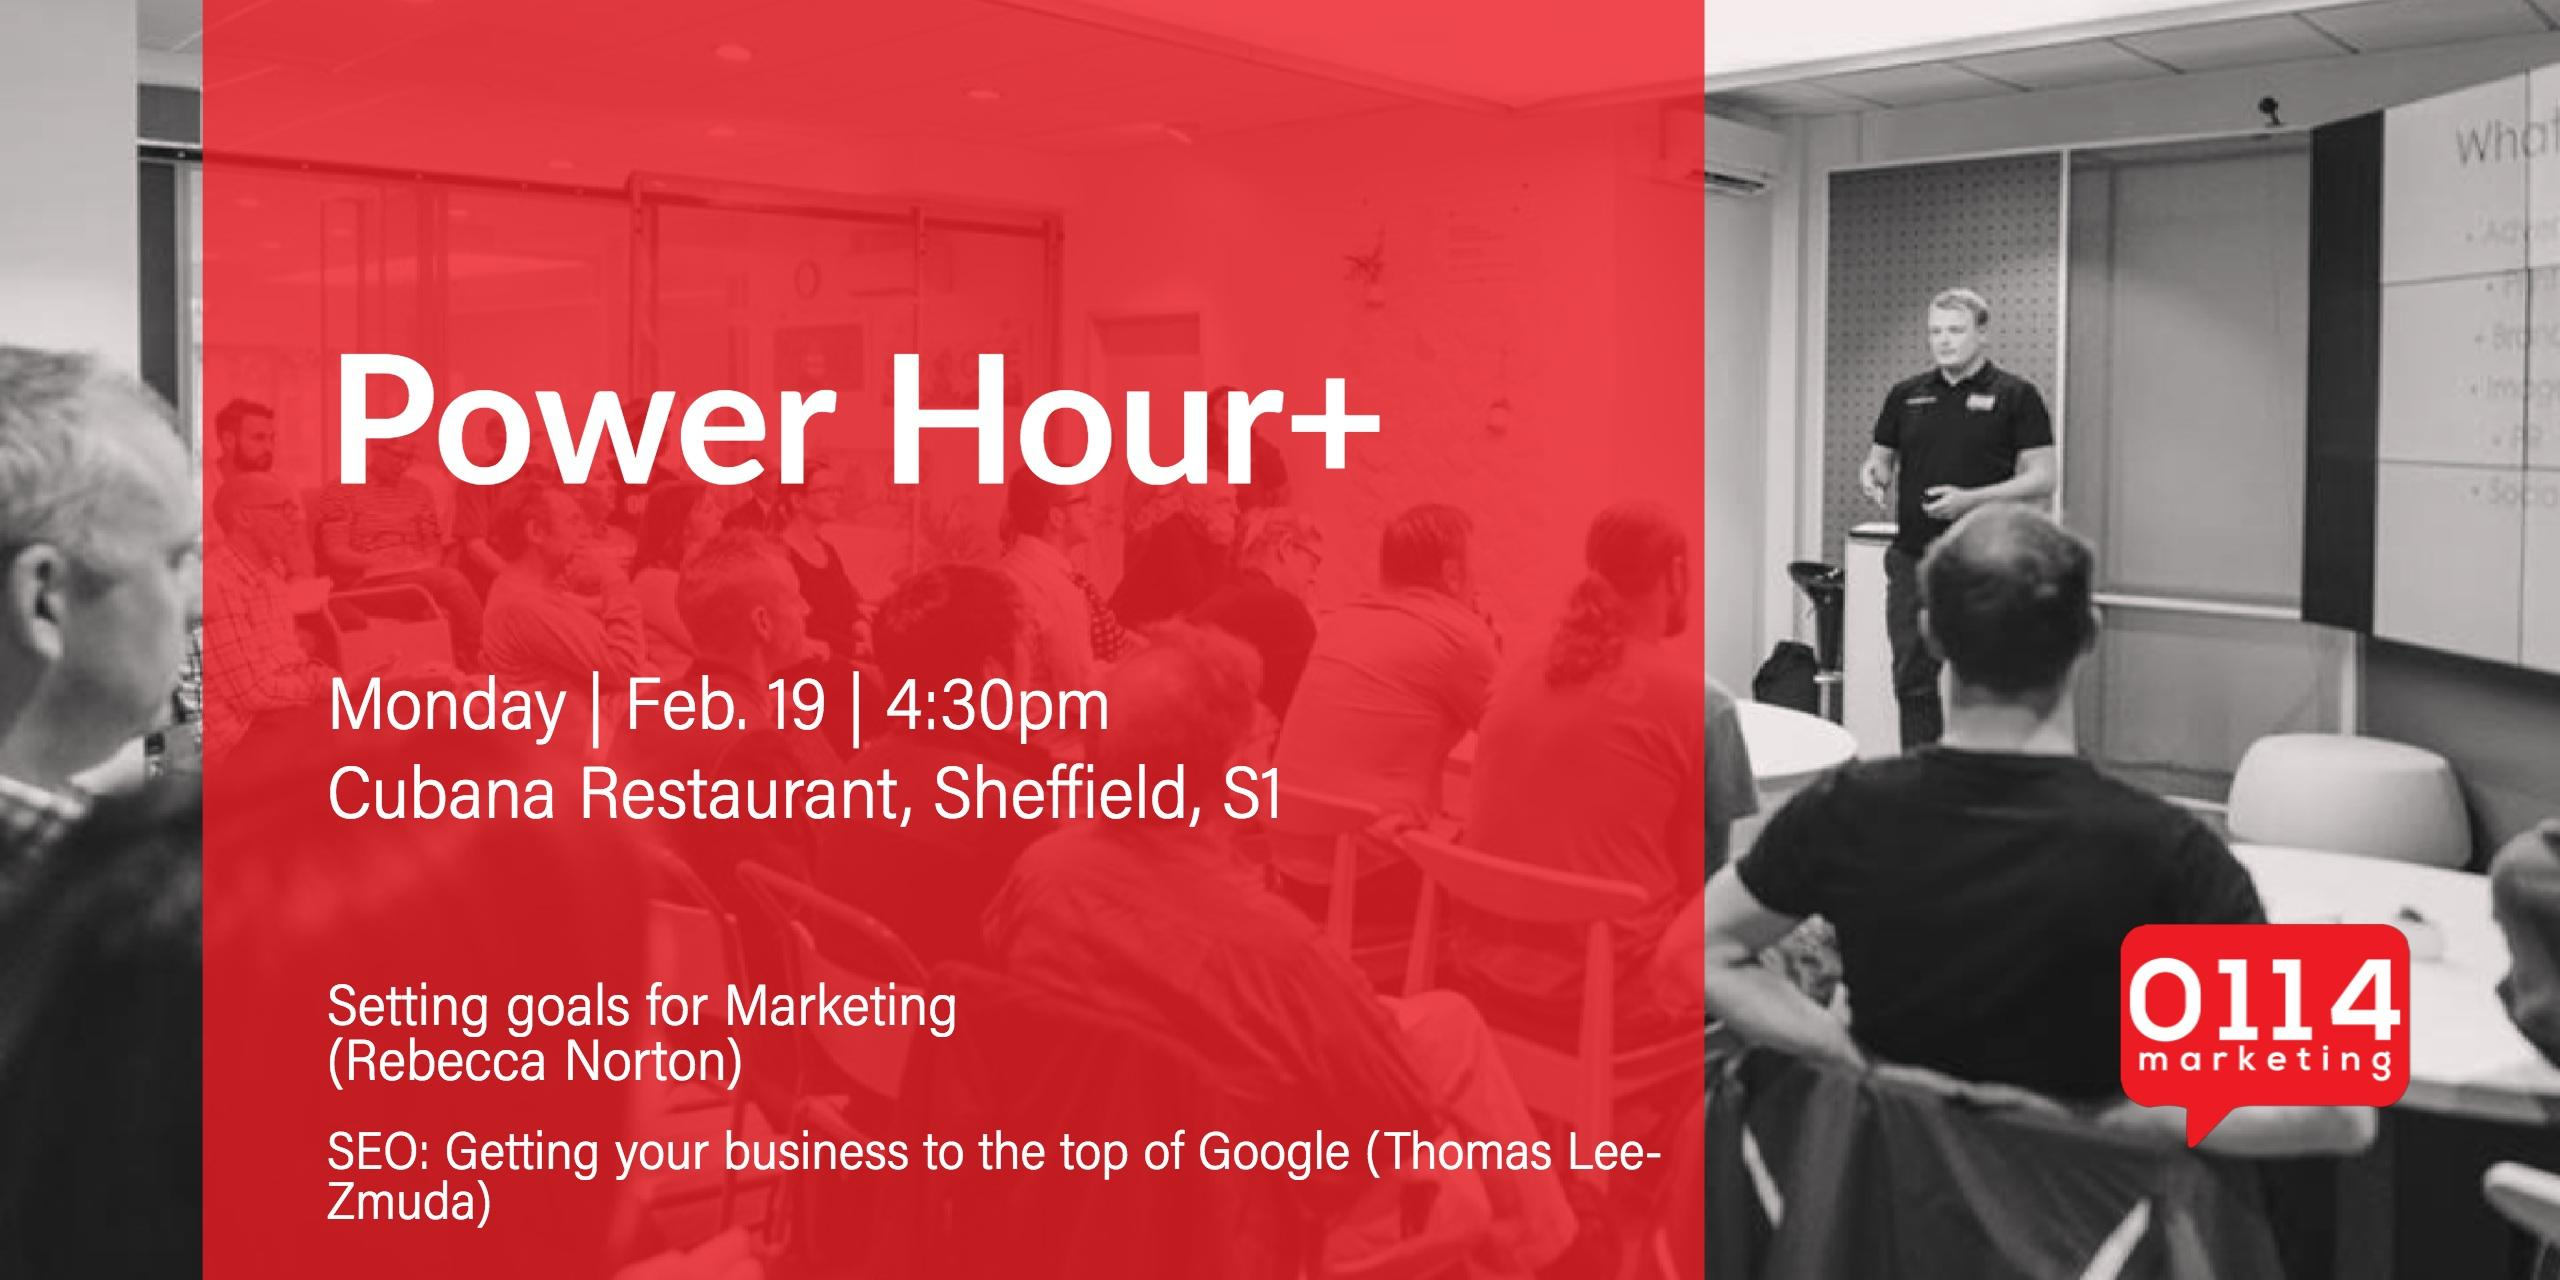 Power Hour+ Getting your business to the top